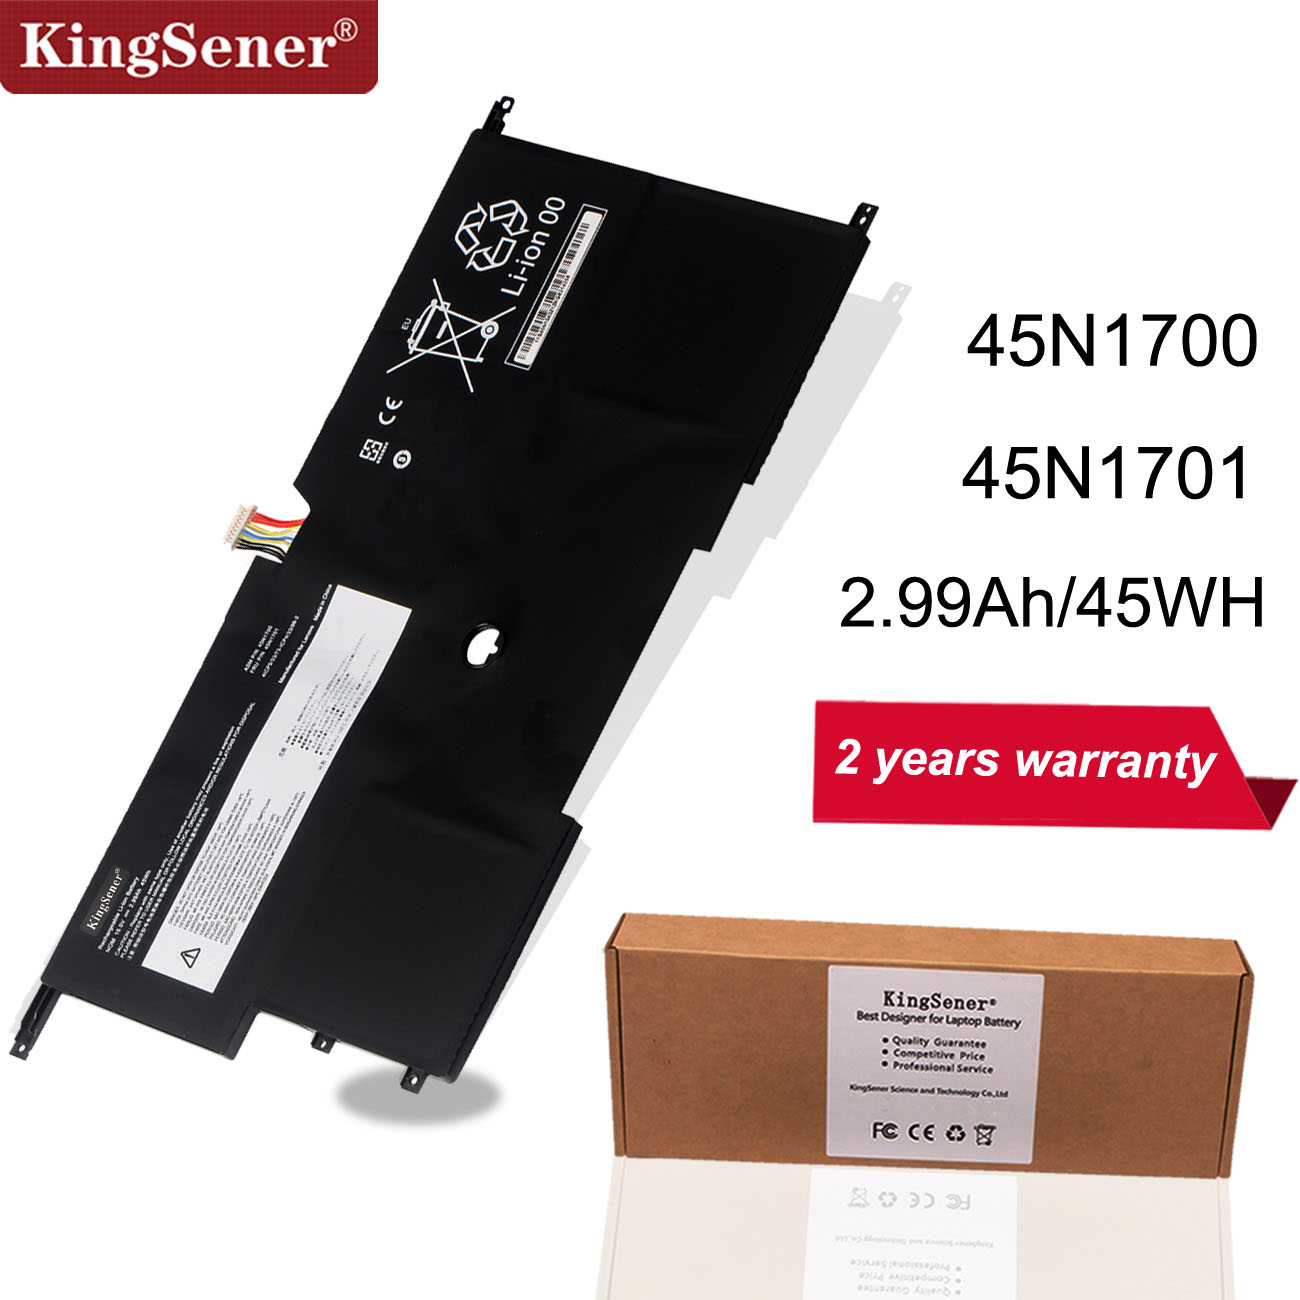 KingSener X1 Laptop Battery 45N1700 45N1701 45N1702 45N1703 For Lenovo ThinkPad X1 Carbon Gen 3 Series 4ICP5/58/73-2 15V 45WH